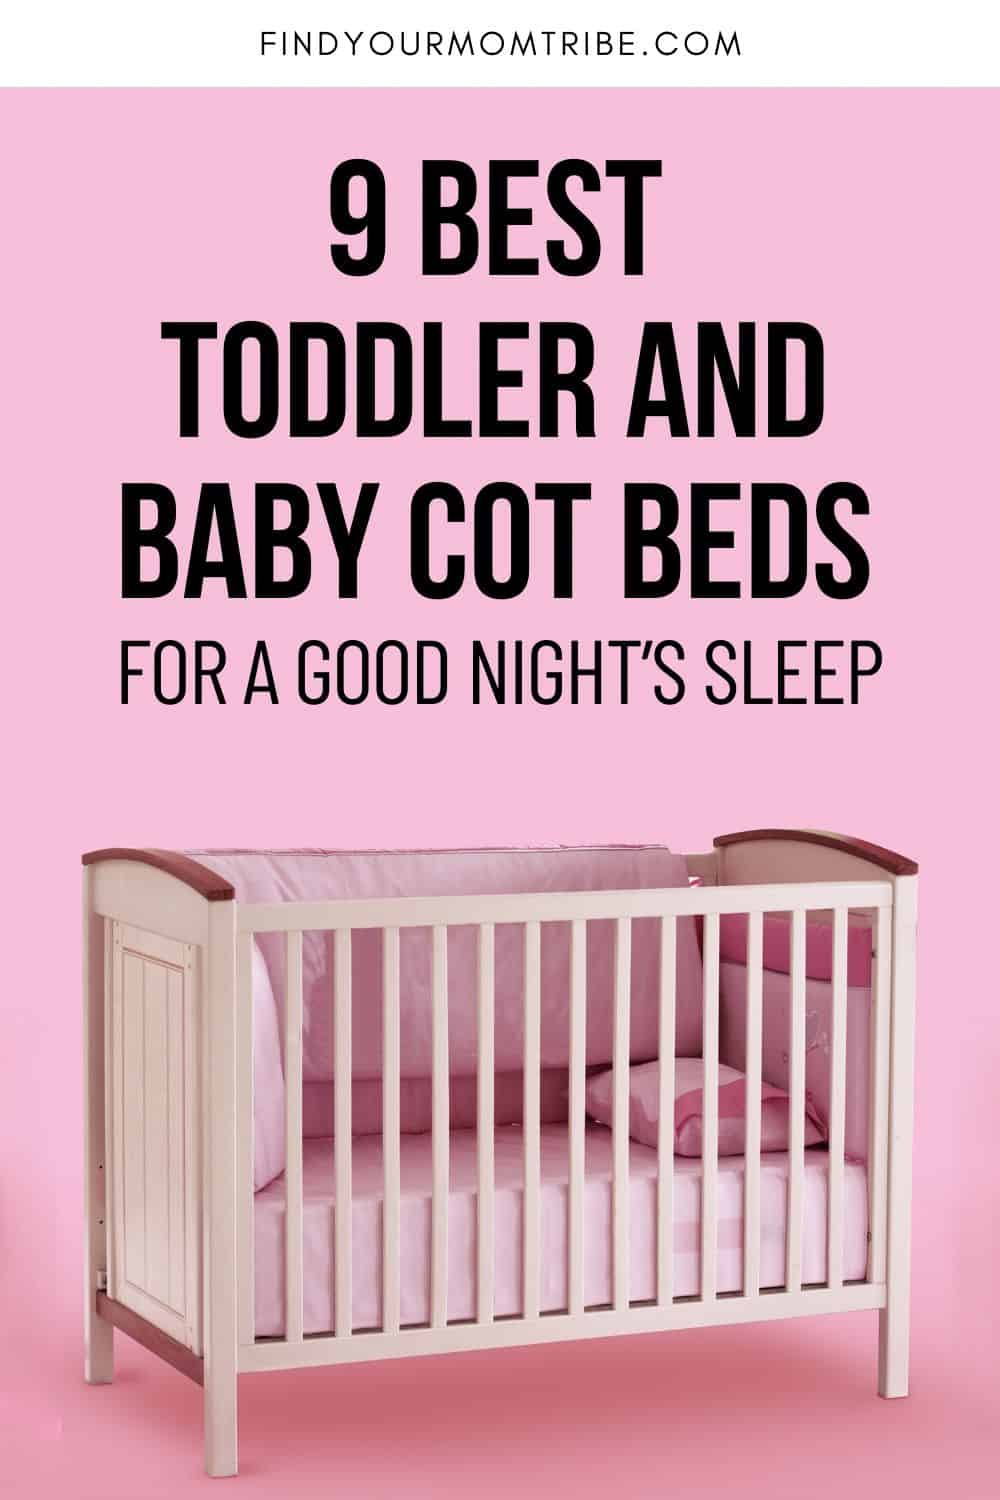 Toddler And Baby Cot Beds